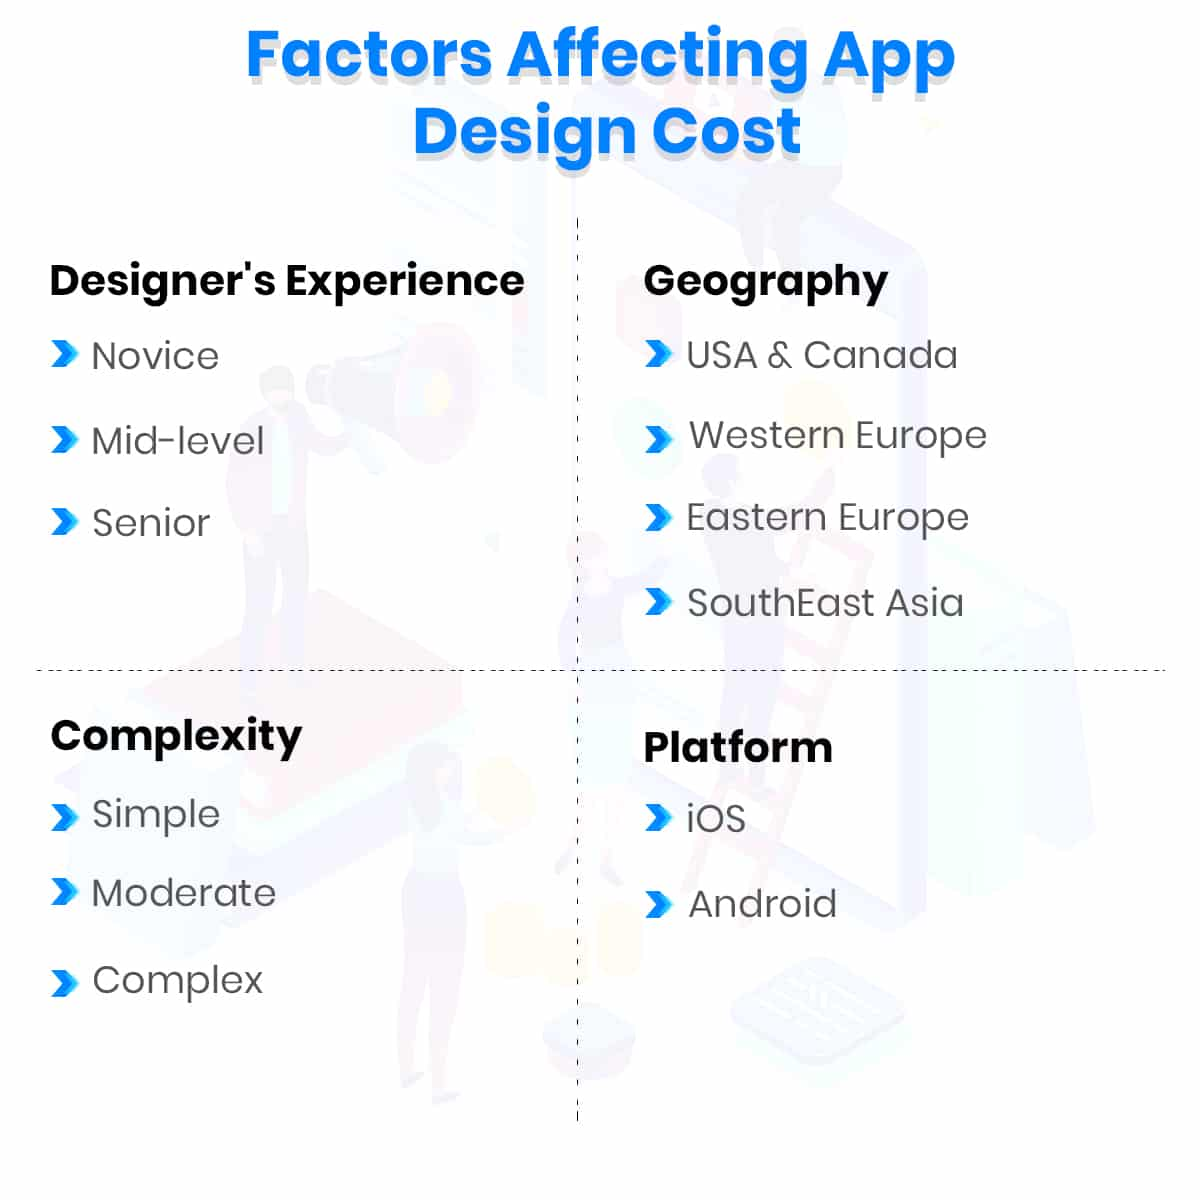 Factors affecting Cost of Design